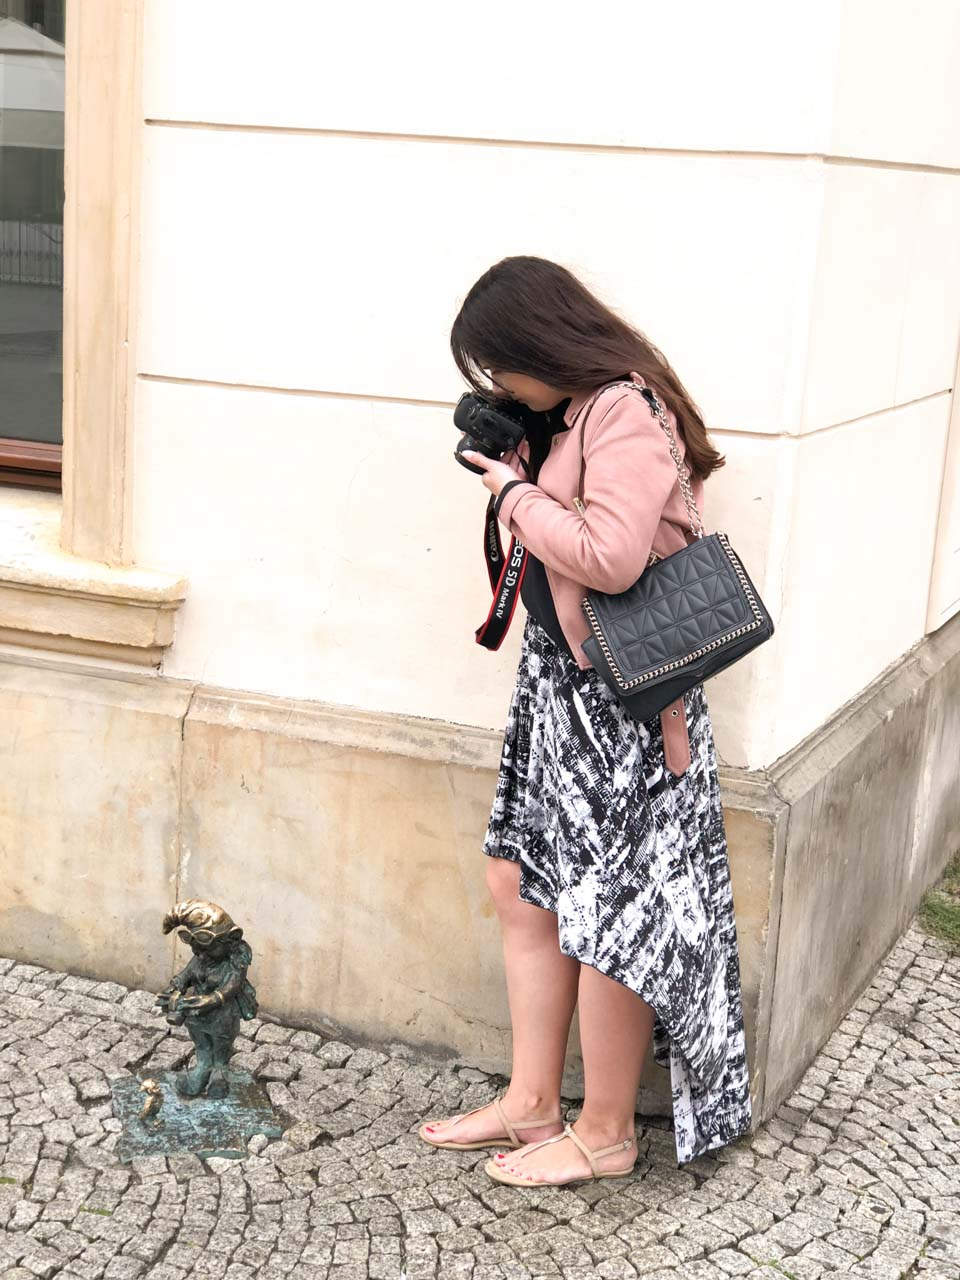 A girl taking a photo of a dwarf statue in Wrocław with her Canon 5D Mark IV DSLR camera